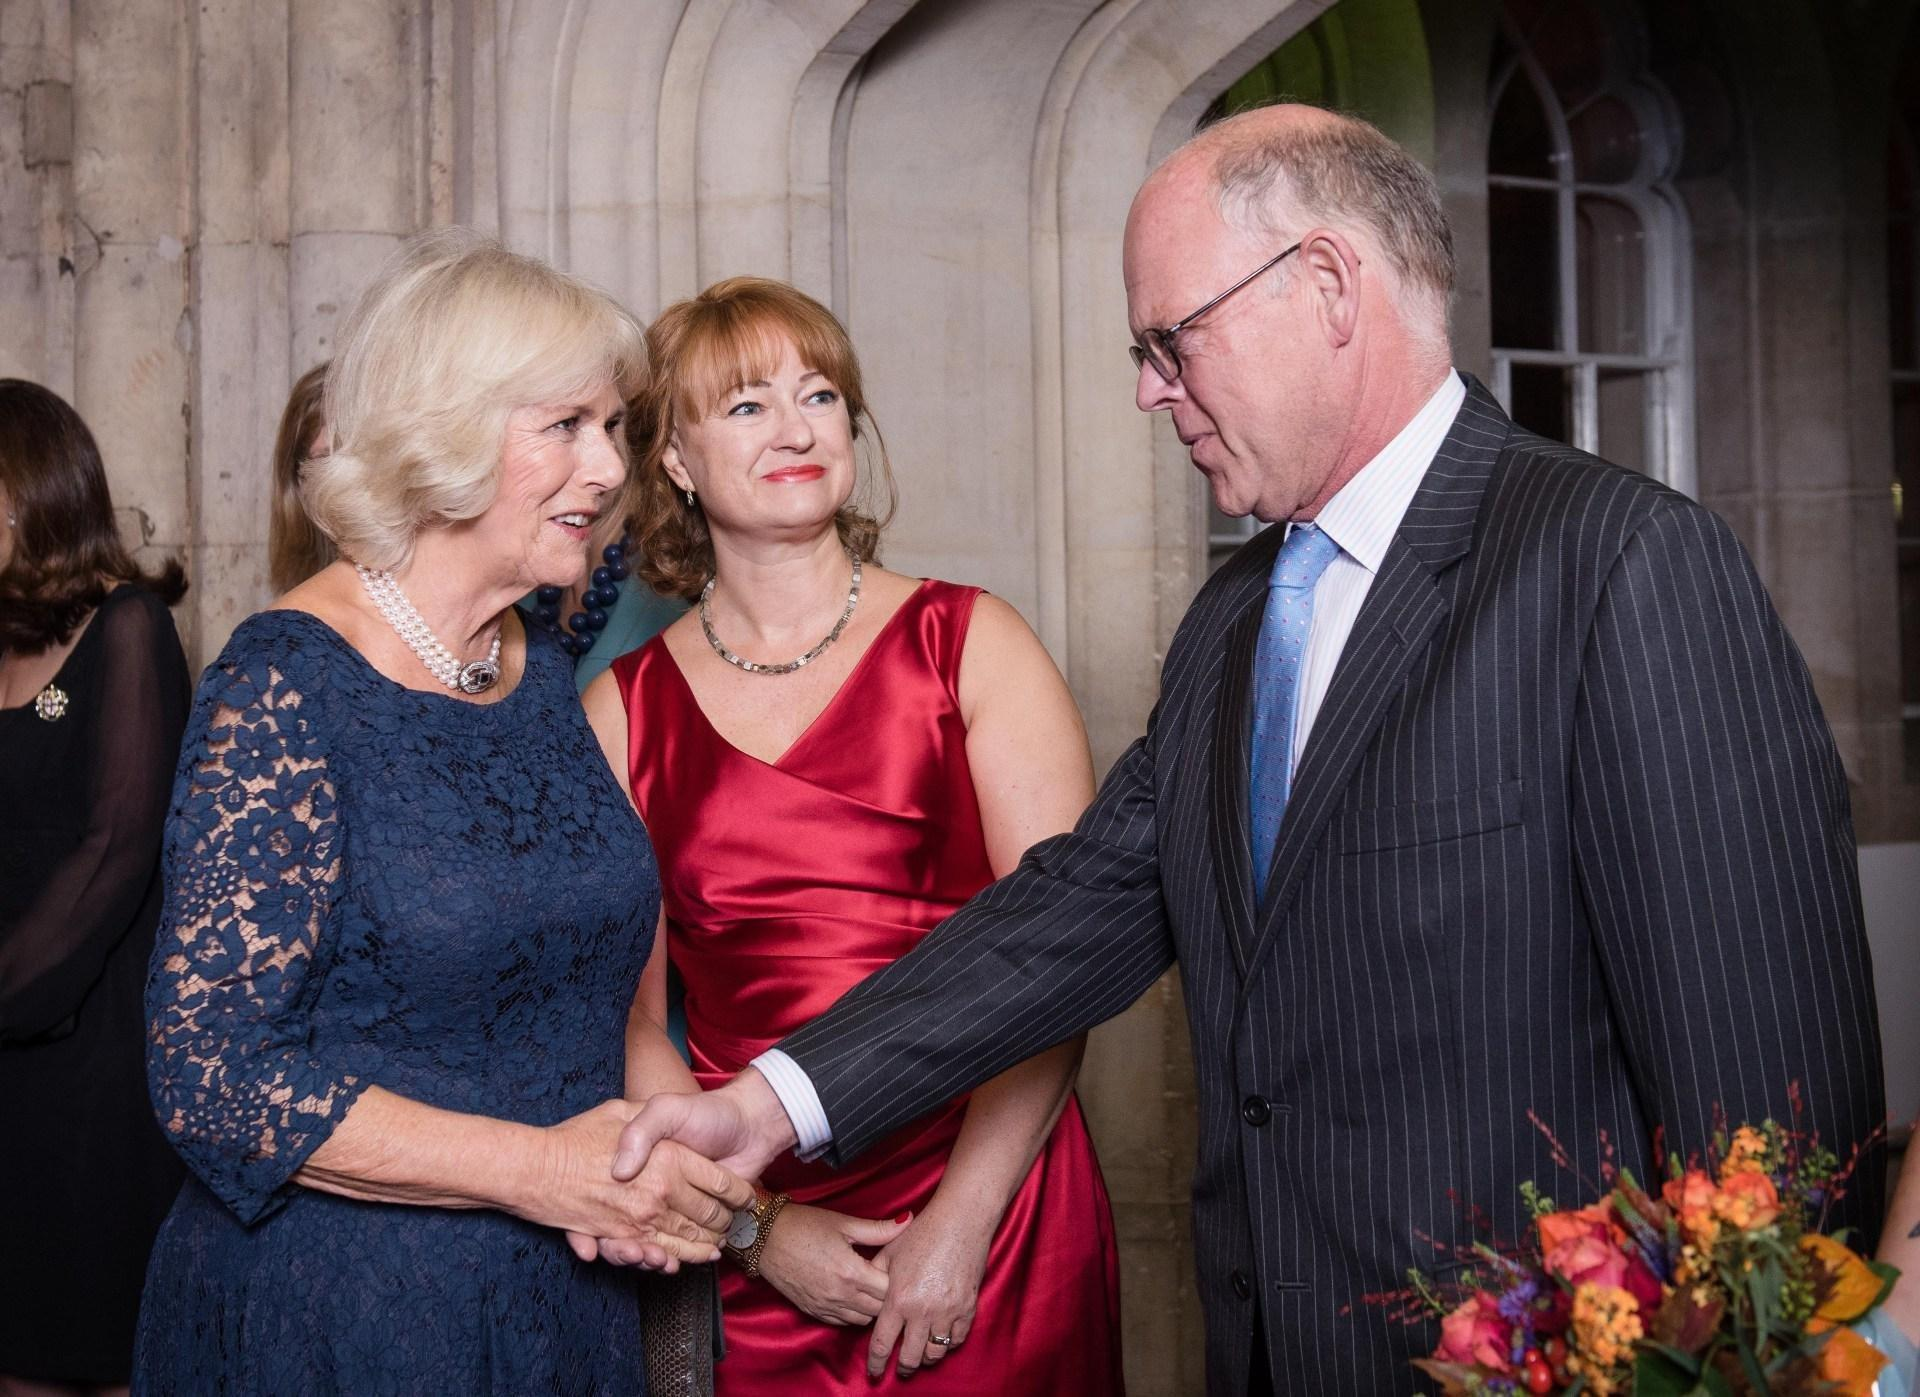 The Duchess Of Cornwall And Prime Minister Join Jdrf To Mark 30 Years Of Type 1 Diabetes Research Progress